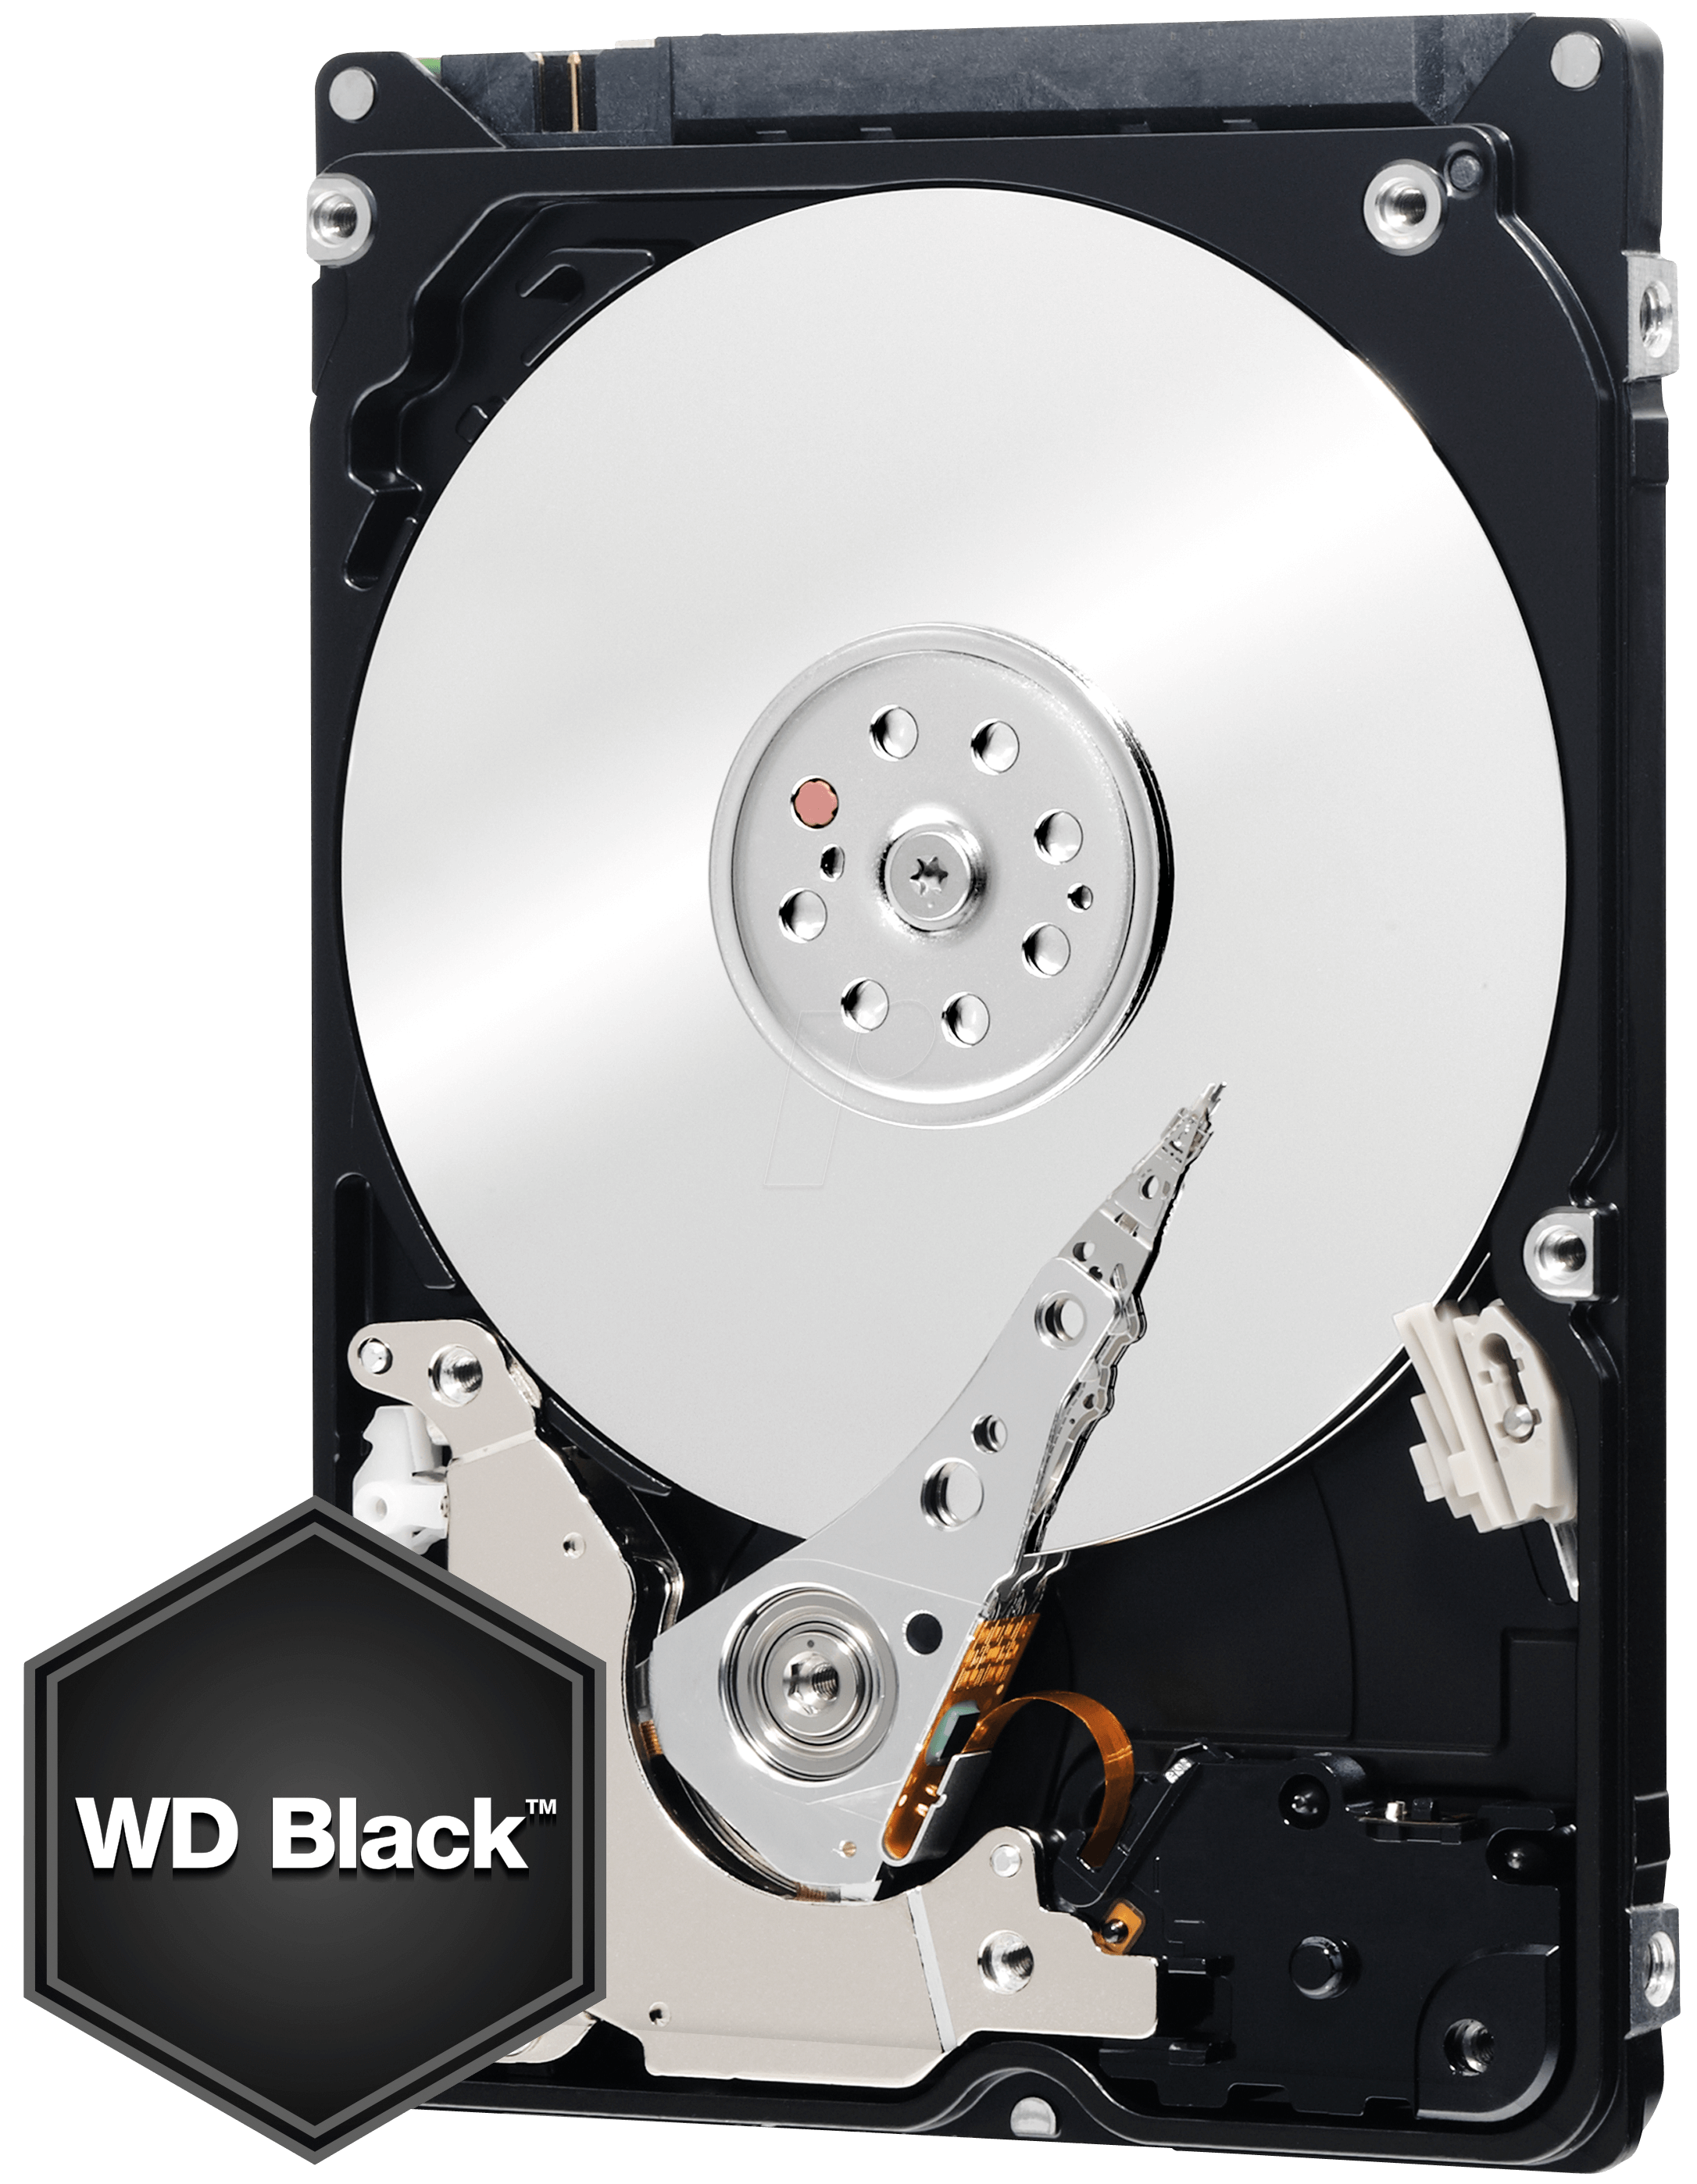 WESTERN DIGITAL WD3200LPLX - Notebook-Festplatte, 320 GB, WD Black